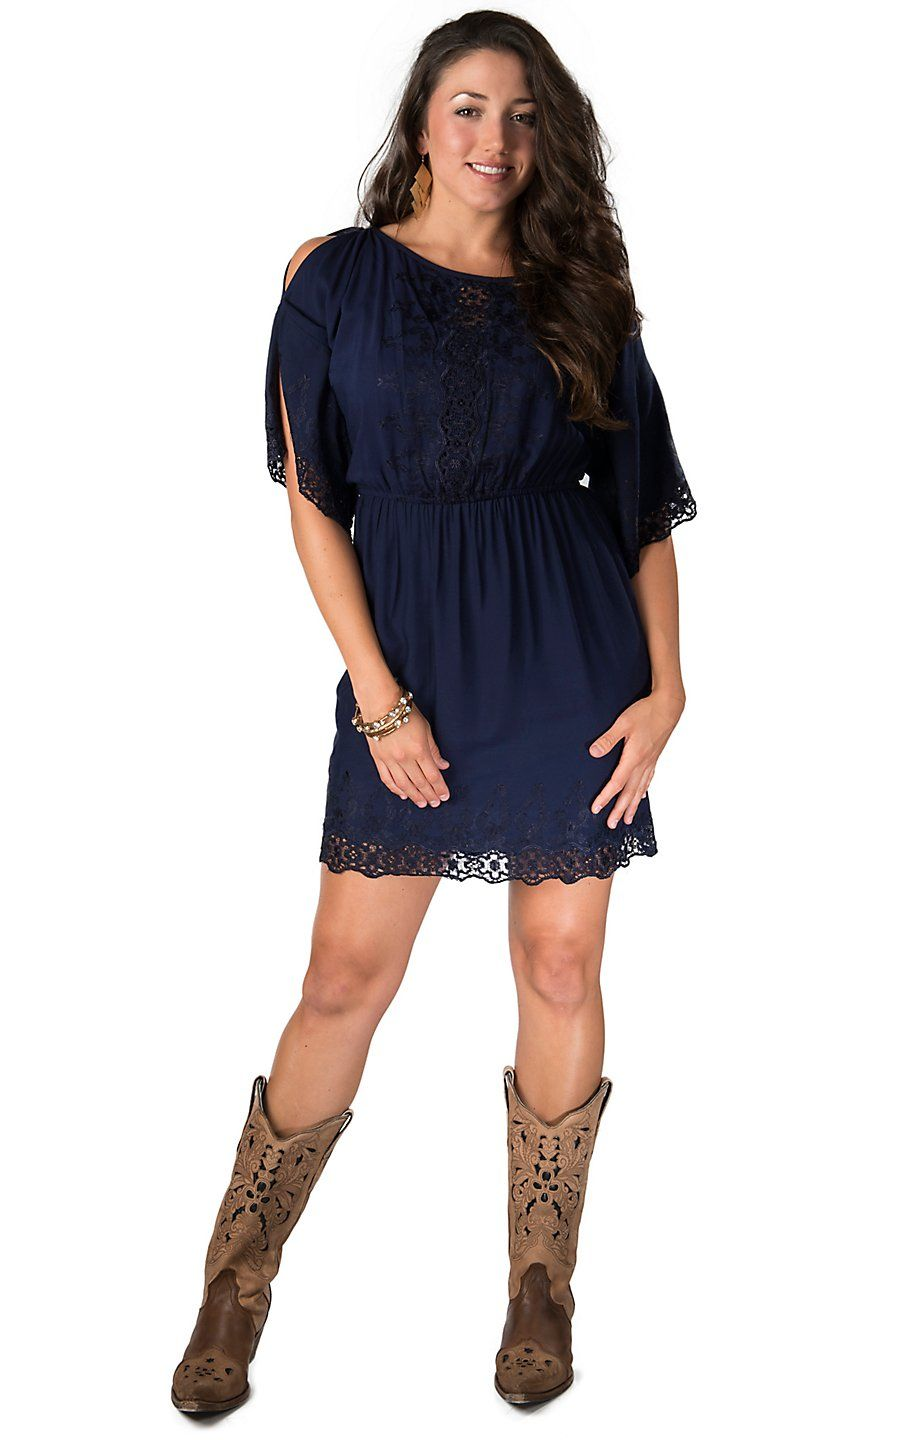 e08d65acaa520 Angie Women s Navy Lace Cold Shoulder 3 4 Sleeve Dress